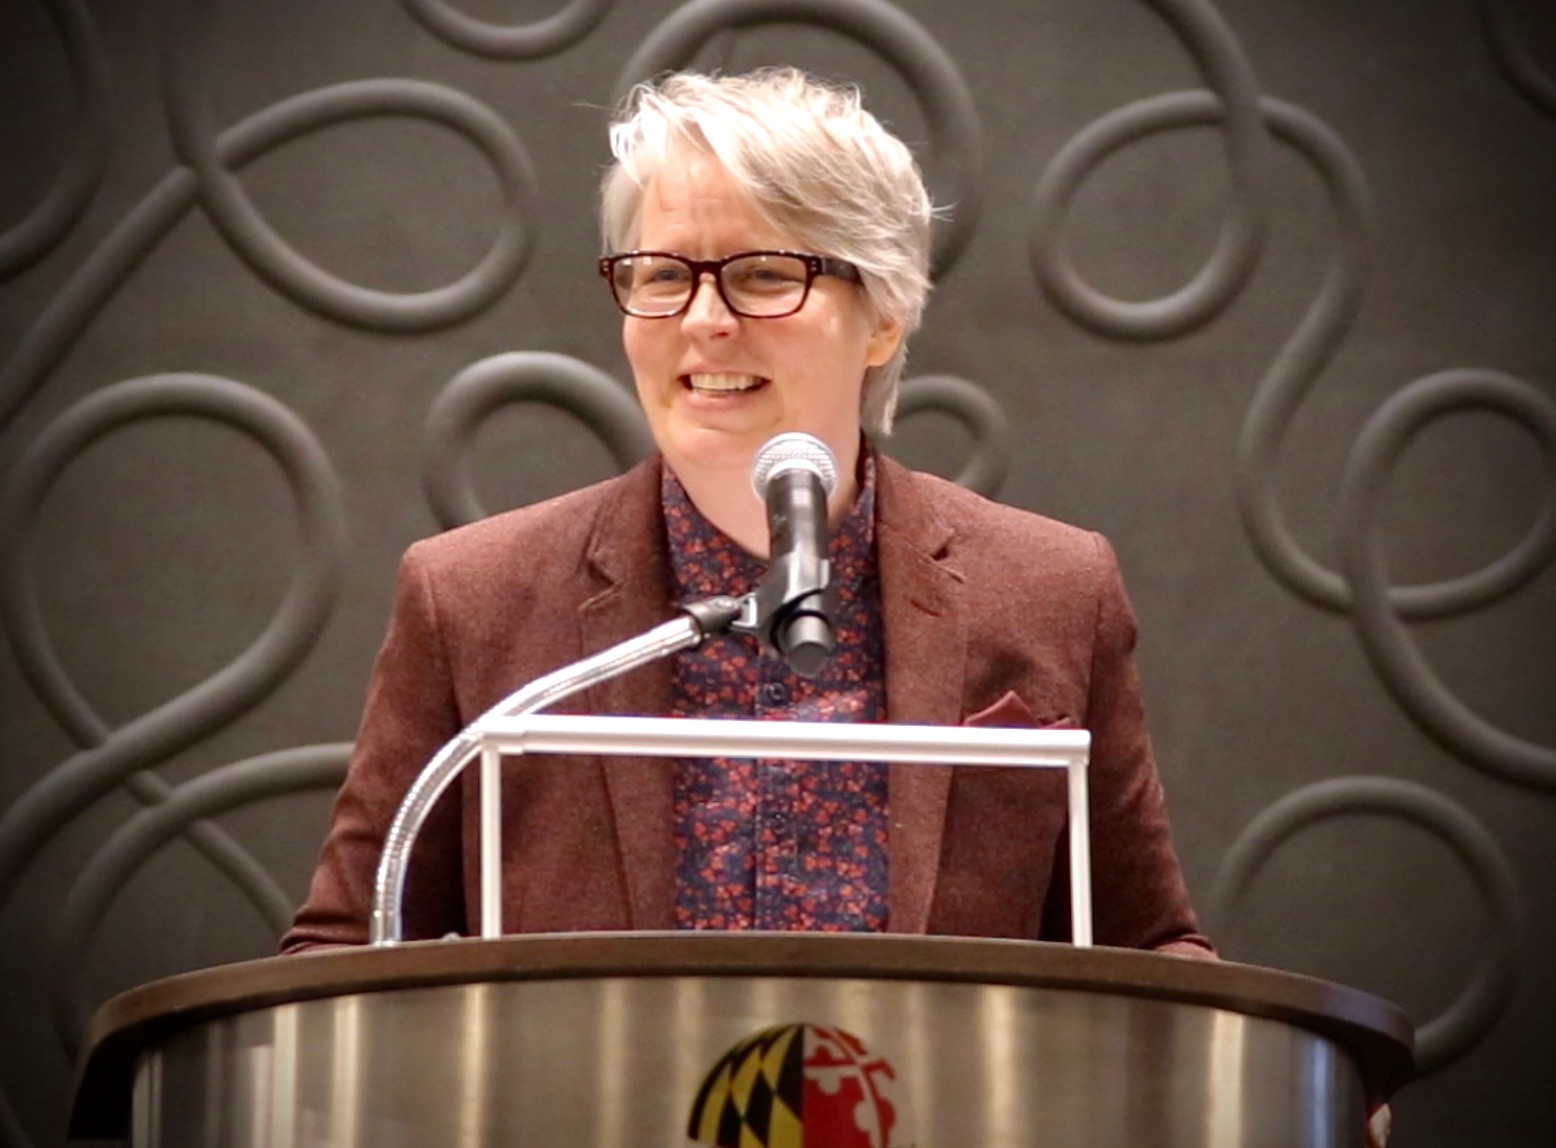 Plenary Address: Small Museums Conference 2019